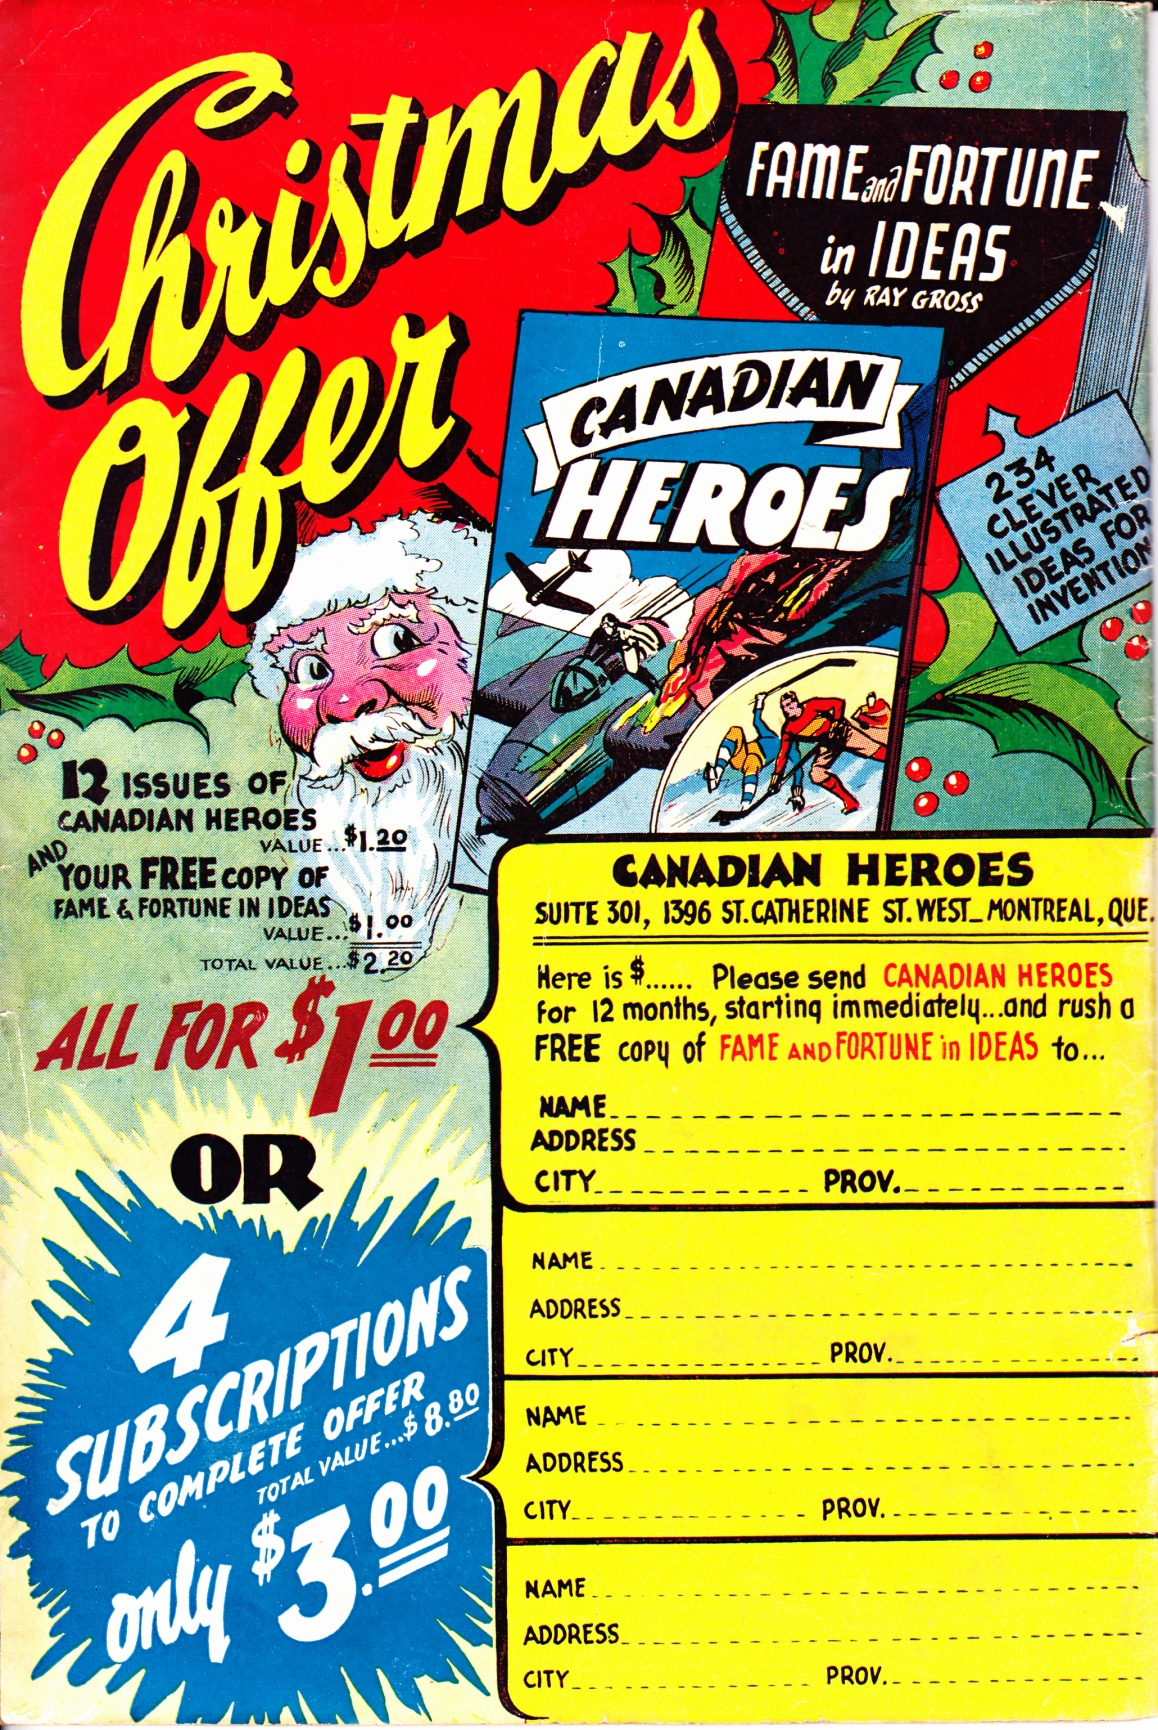 C:\Users\Robert\Documents\CARTOONING ILLUSTRATION ANIMATION\IMAGE COMIC BOOK COVERS\Advertising, Canadian Heroes, 3-1- Nov,Dec, 1943, bc .jpg